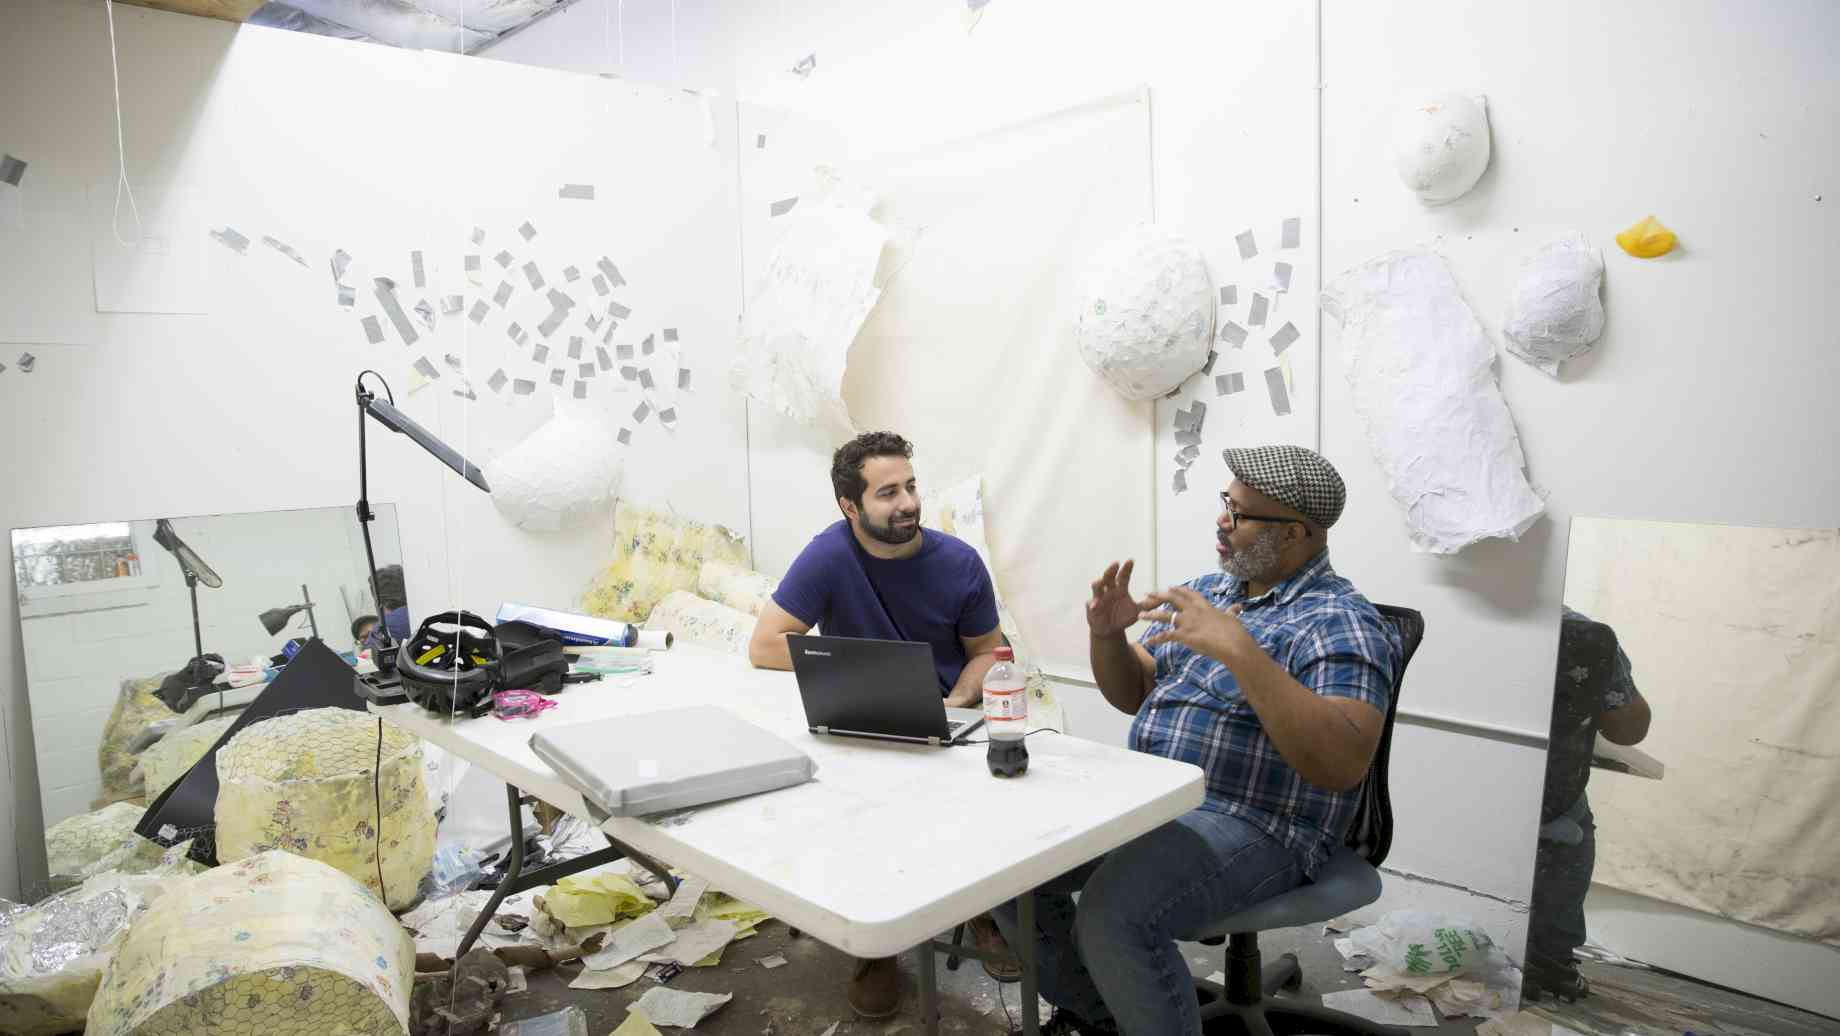 Visiting Artist Trent Doyle Hancock (right) conducts a studio visit with Art + Tech grad student Chris Bianchi